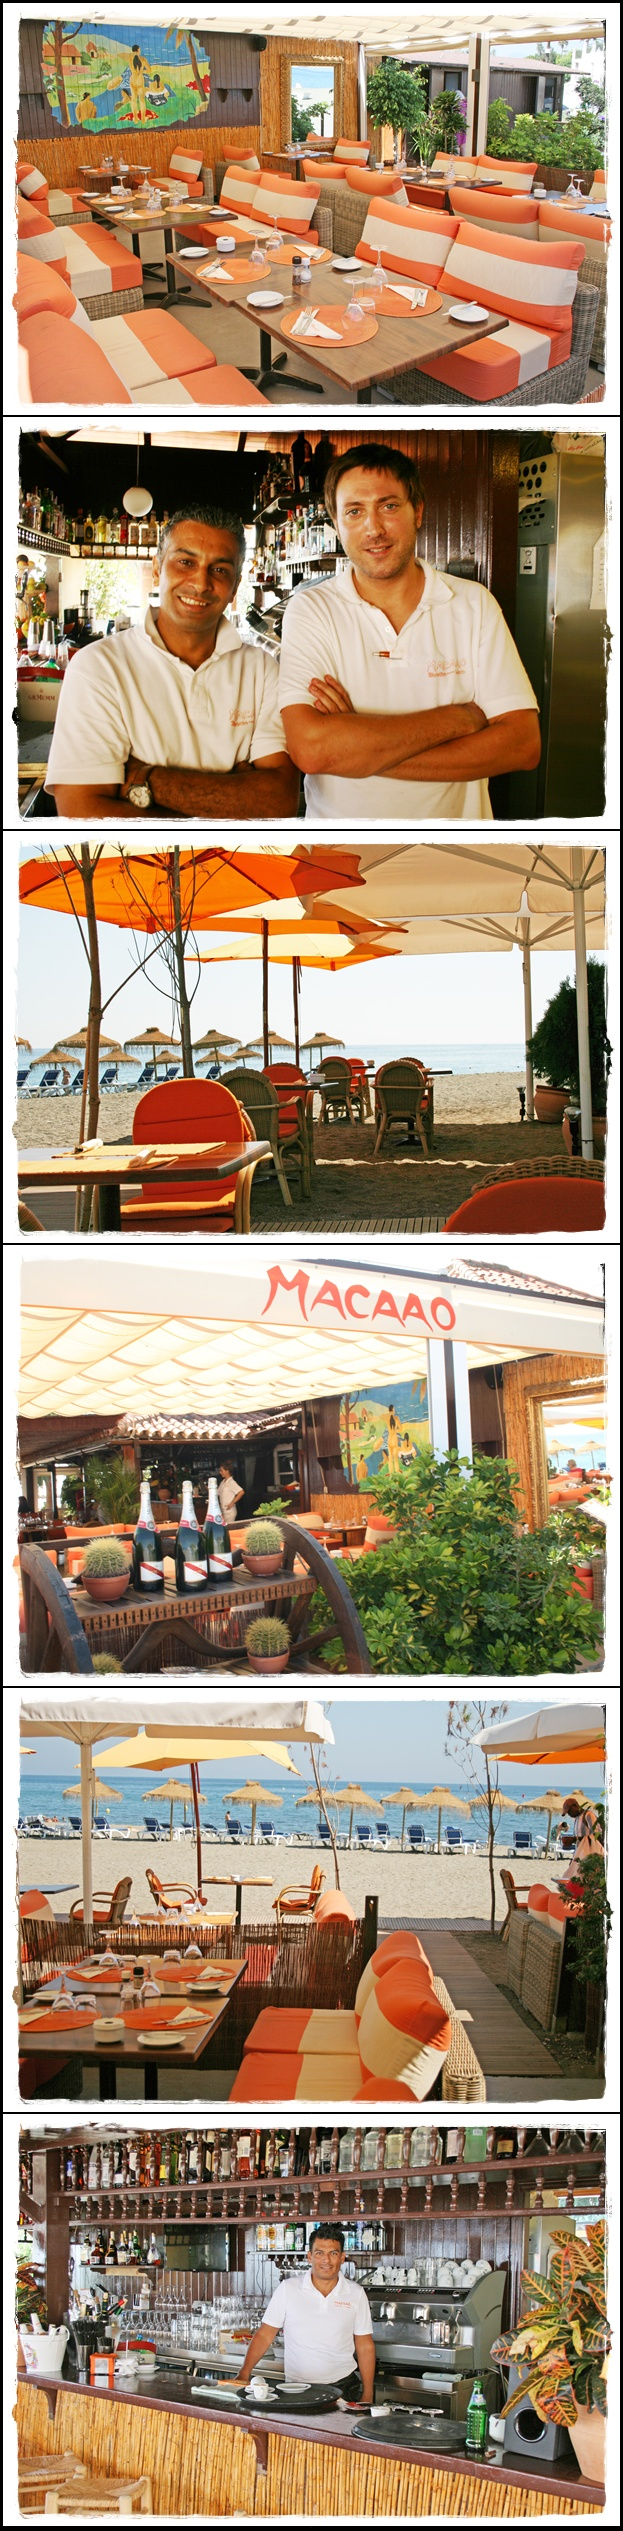 Macaao Beach Club